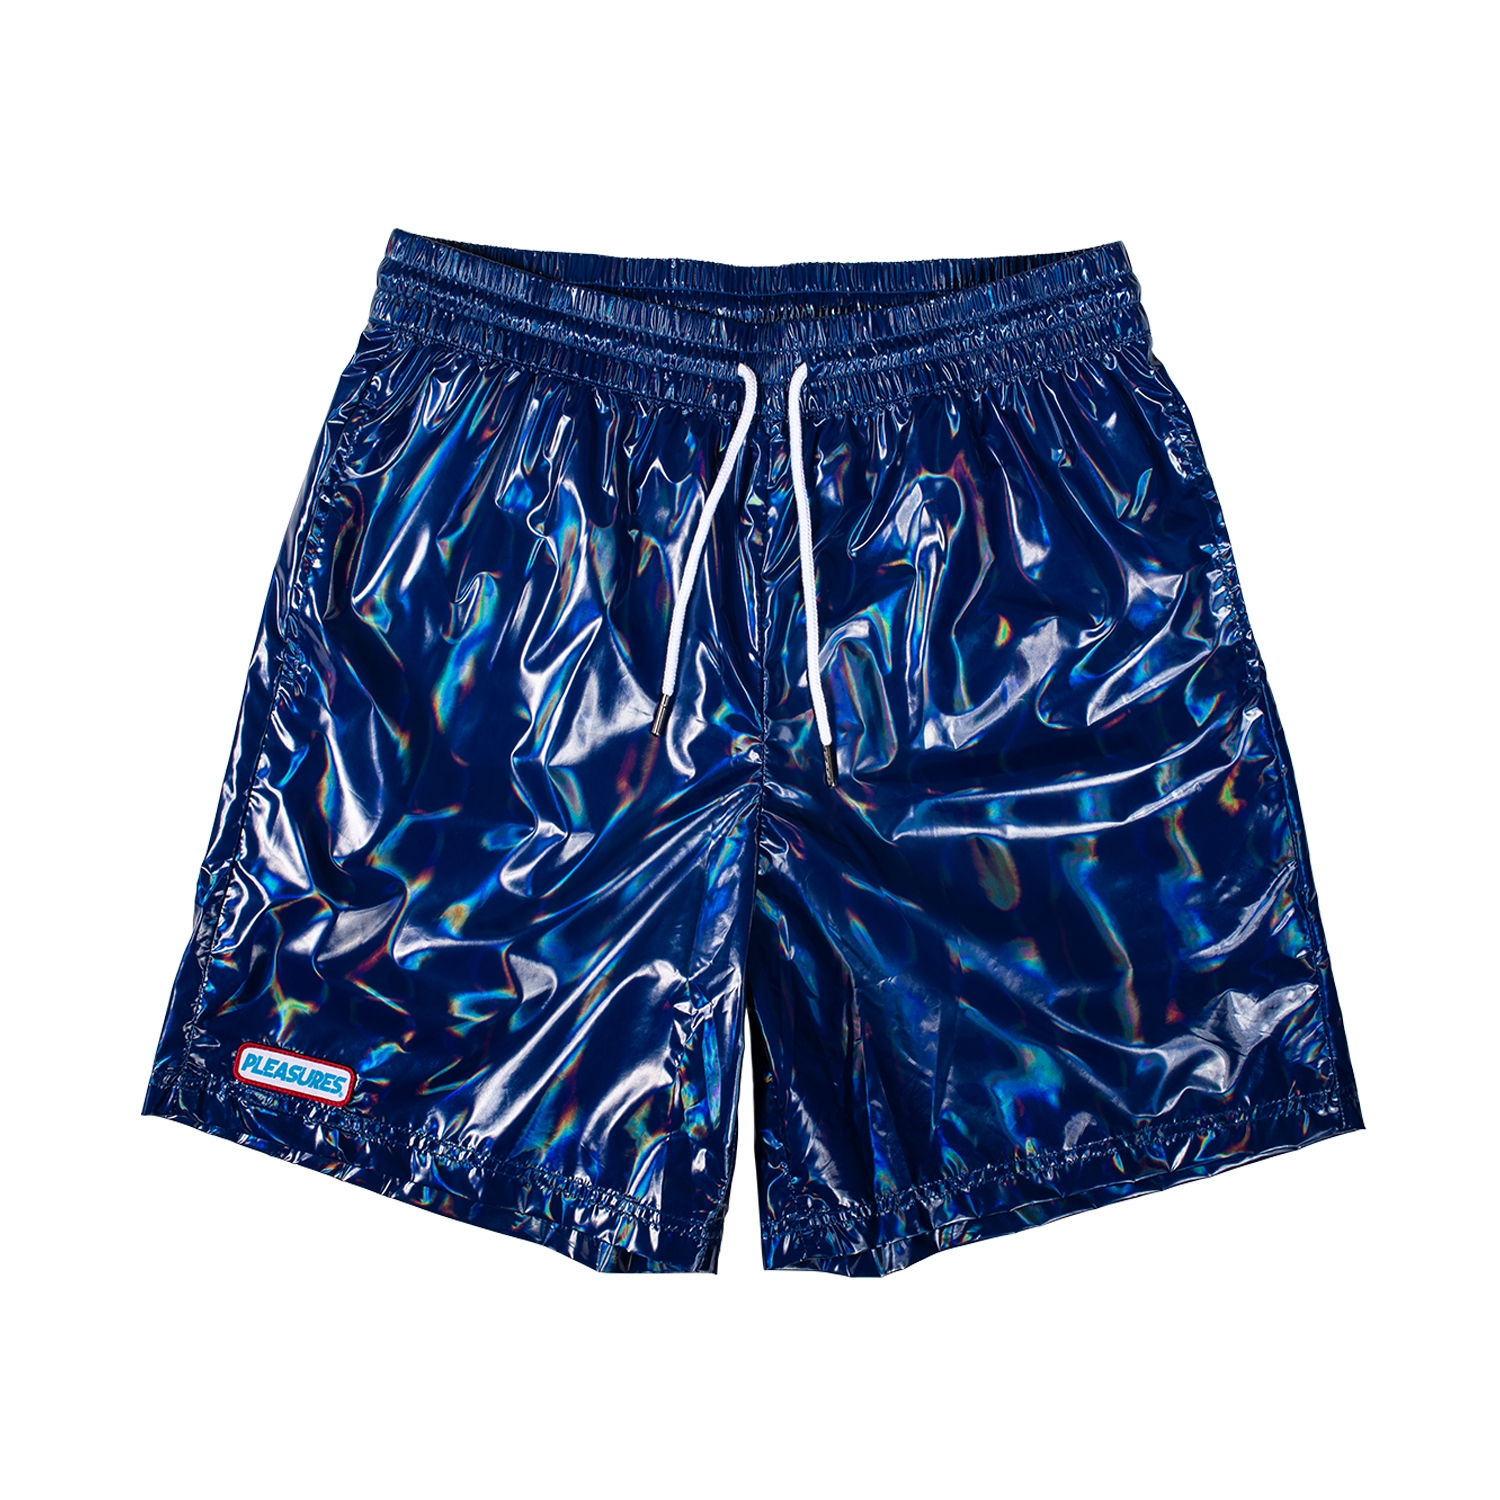 【PLEASURES/プレジャーズ】LIQUID METALLIC SHORTS ショートパンツ / NAVY